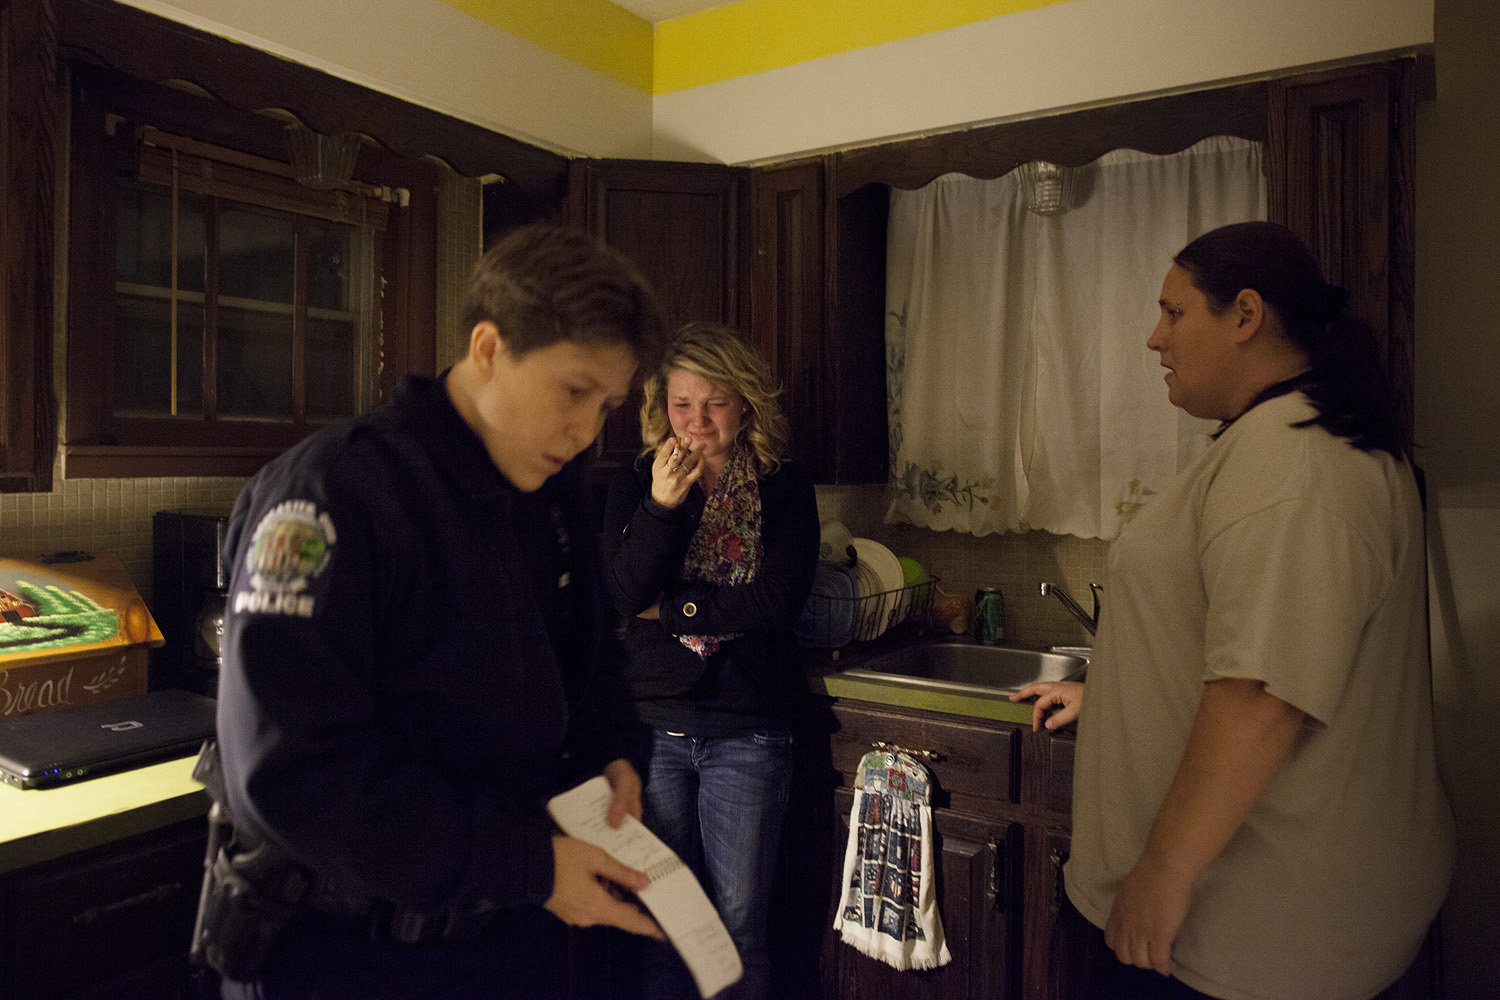 Around half past midnight, the police arrived after receiving a call from a resident in the house (pictured at right). Maggie cried and smoked a cigarette as an officer from the Lancaster Police Department tried to keep her separated from Shane and coax out the truth about the assault.